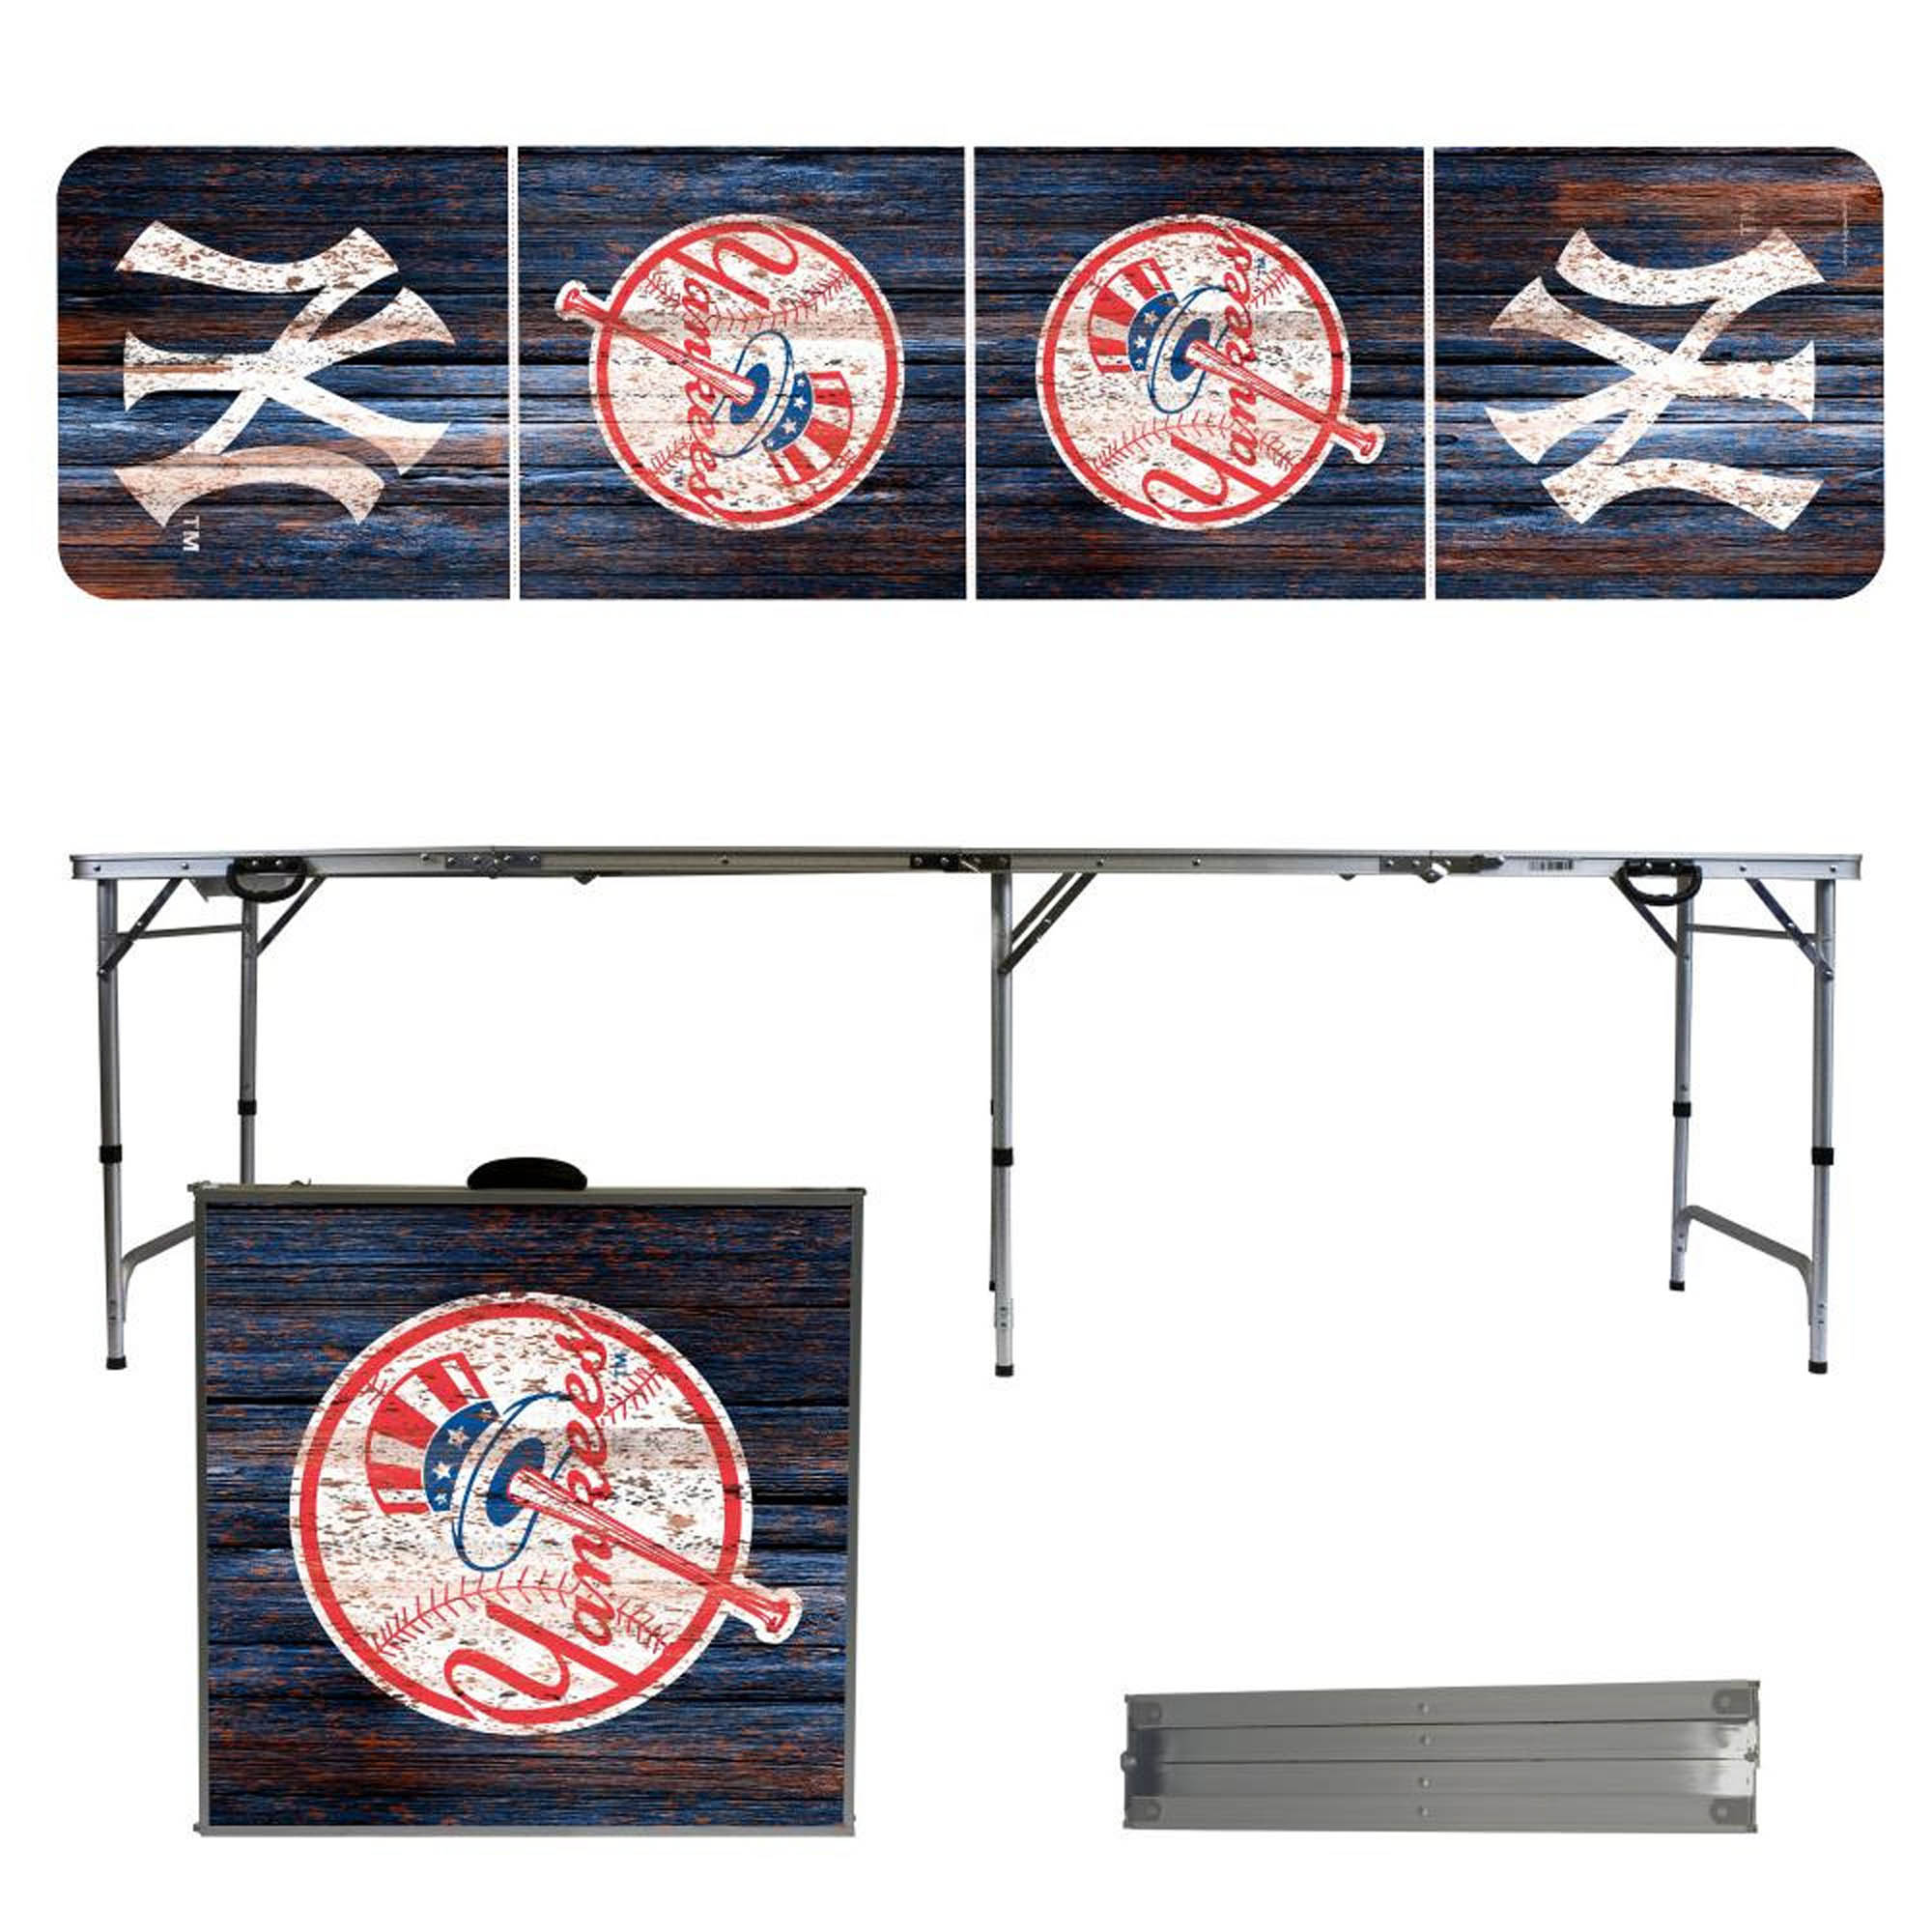 New York Yankees Weathered Design 8' Portable Folding Tailgate Table - No Size